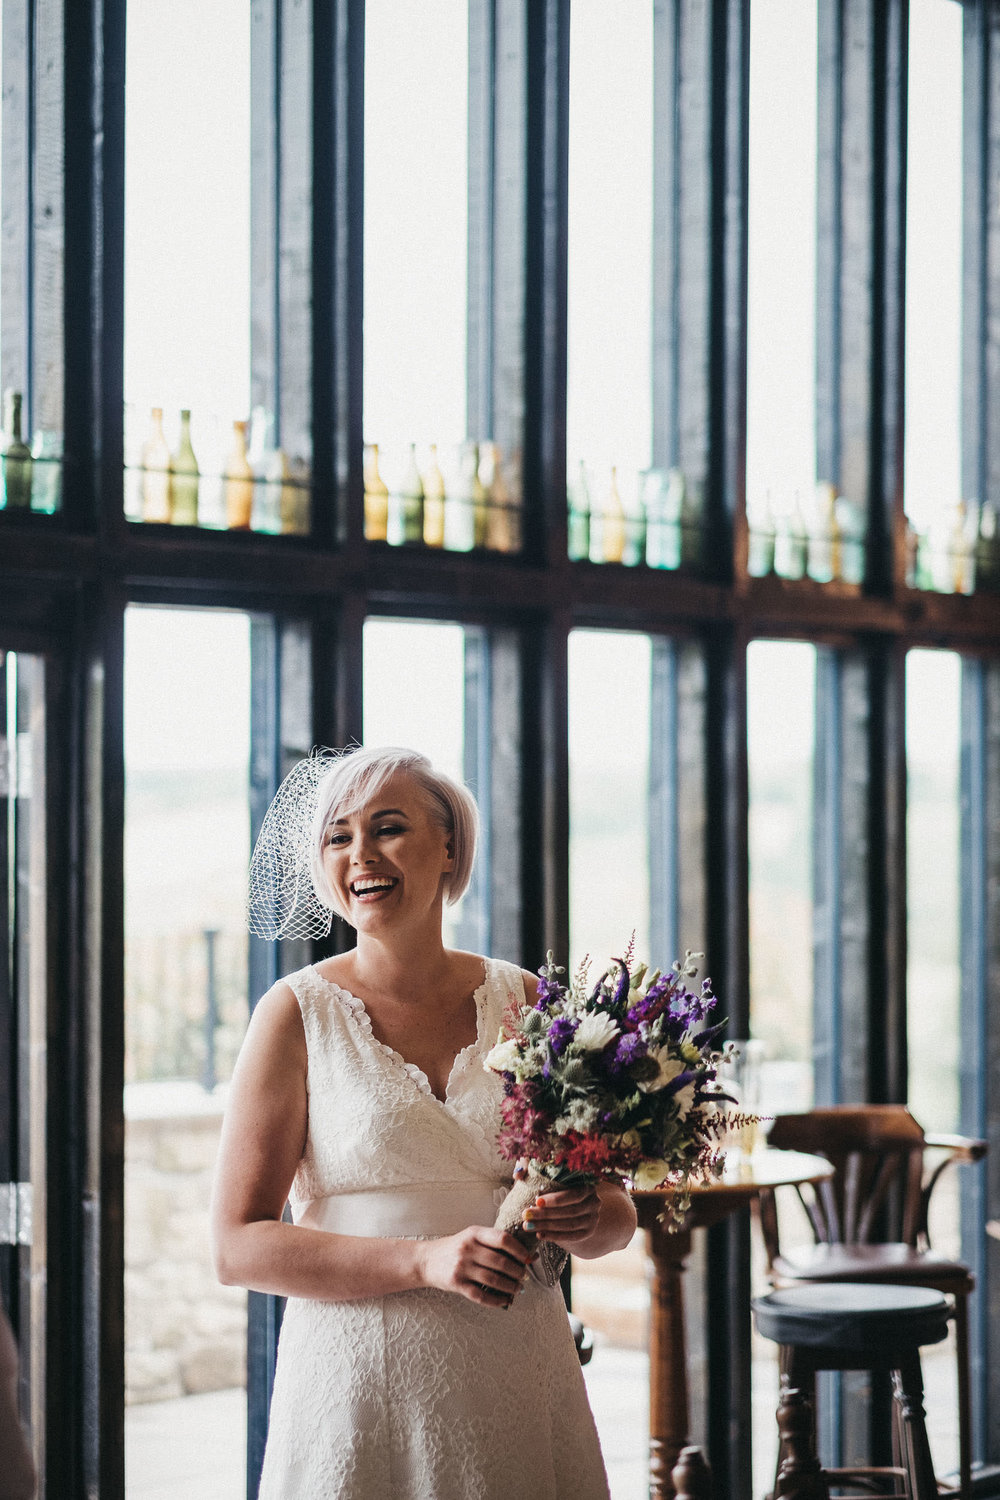 Bride laughing while holding bouquet at South Causey Inn